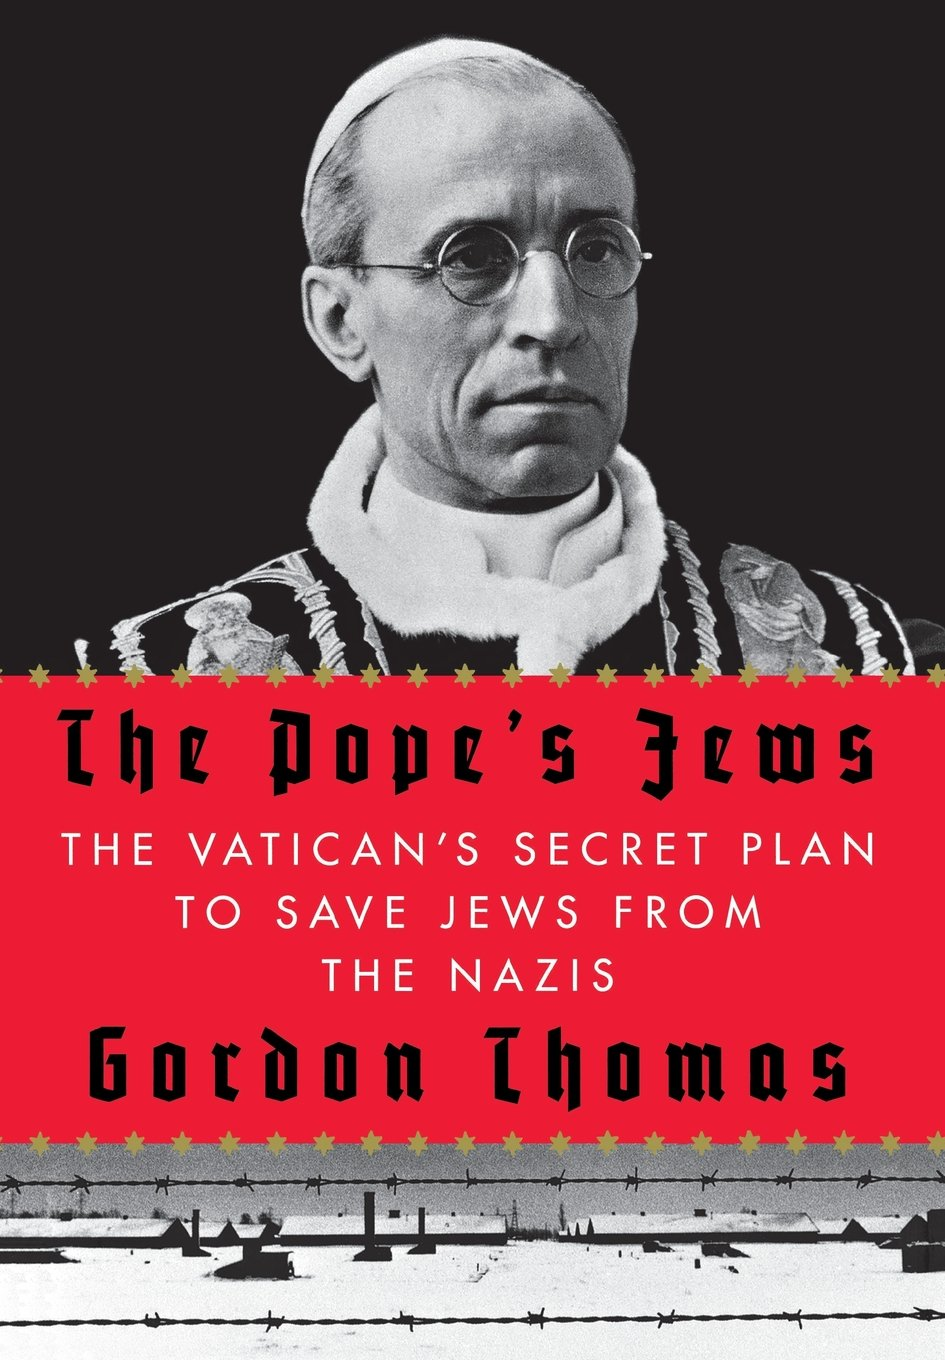 the-pope-s-jews-the-vatican-s-secret-plan-to-save-jews-from-the-nazis